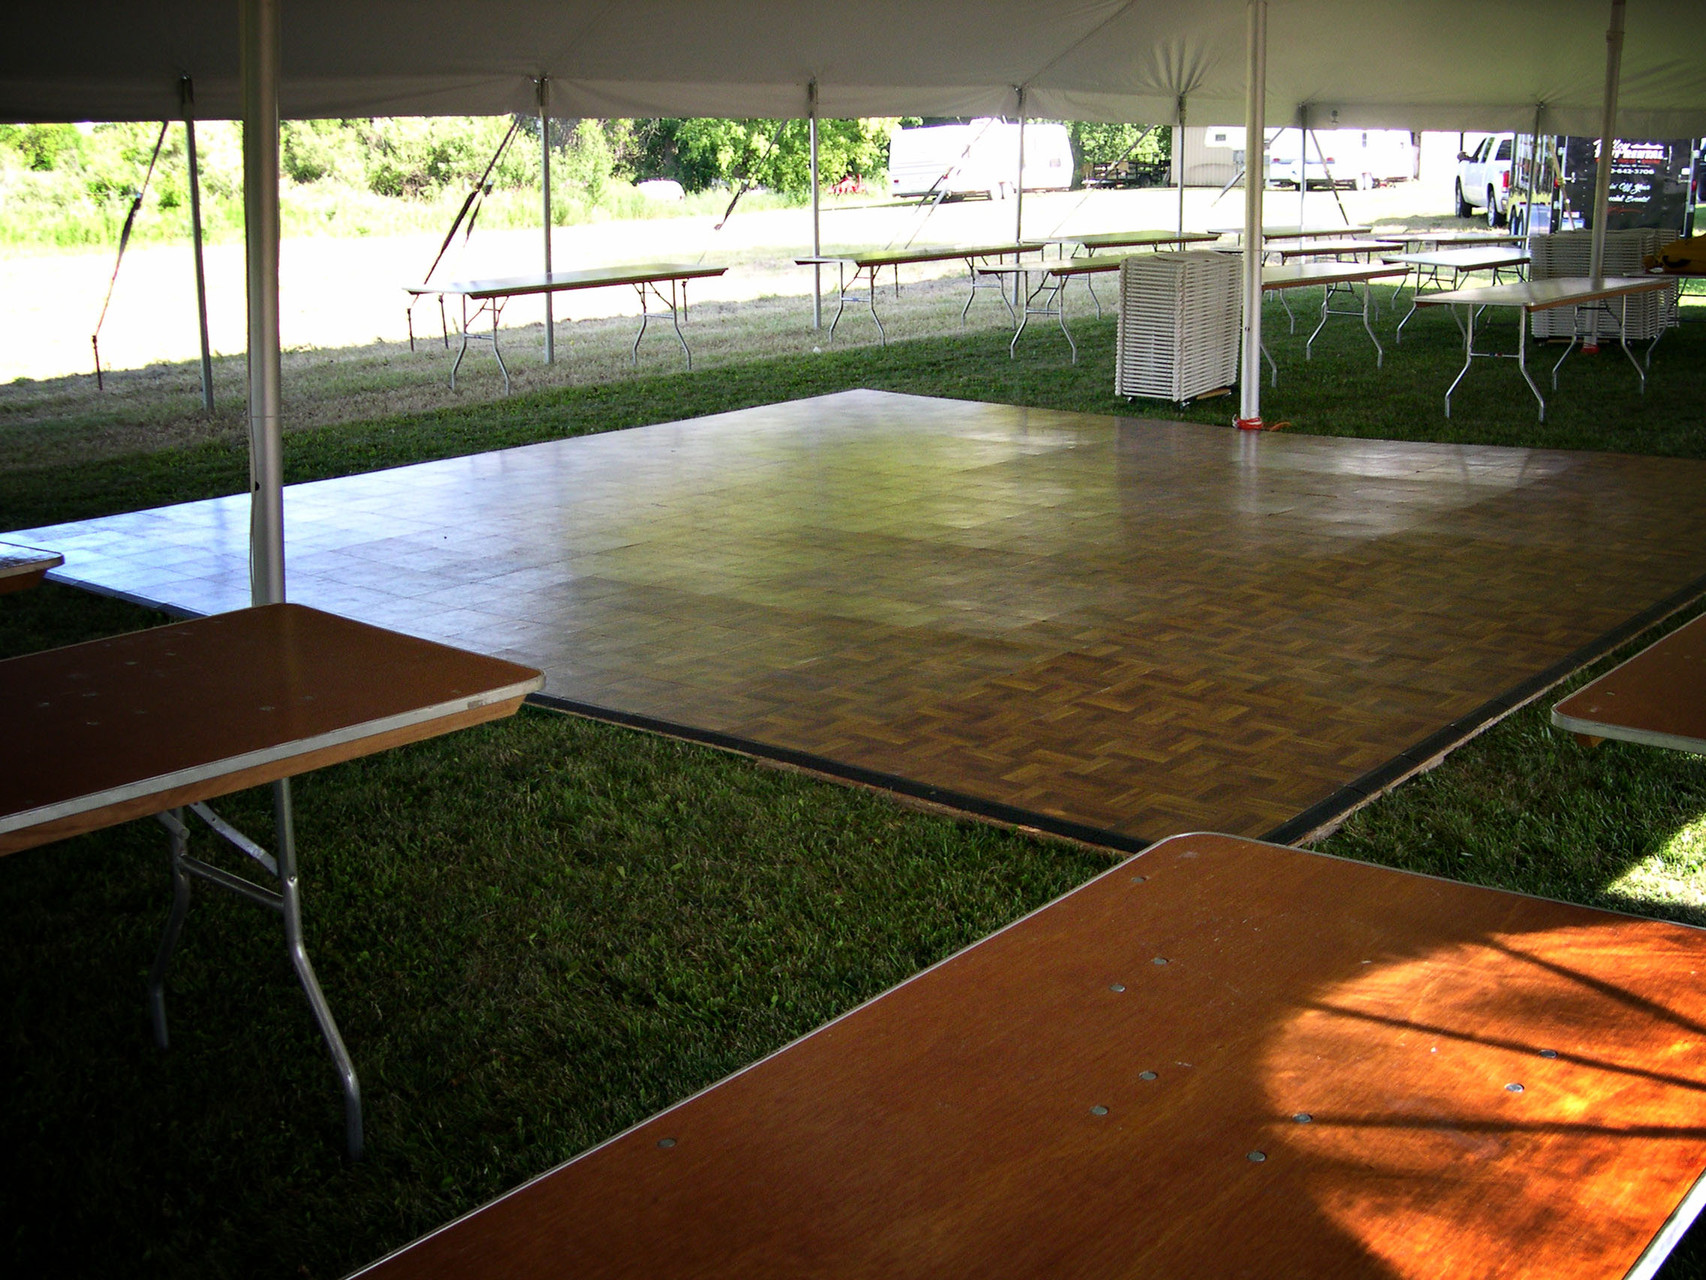 20 x 20 Dance floor shown with smaller sizes available